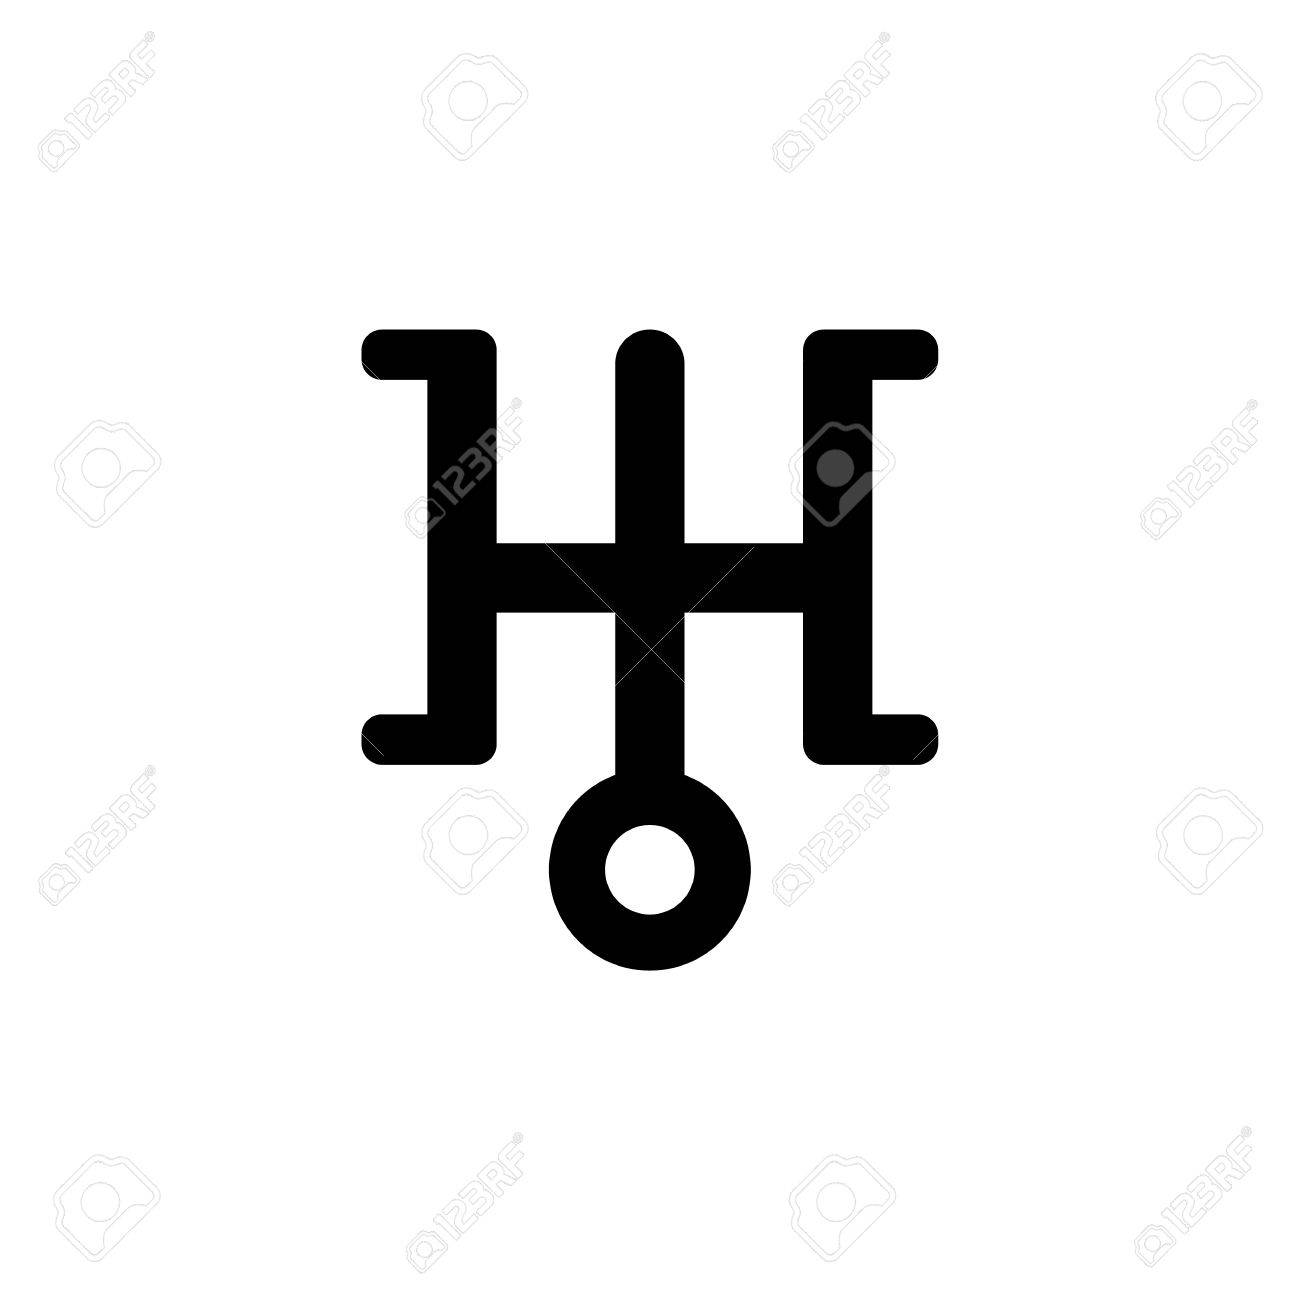 Astronomical symbol of uranus black sign isolated on white astronomical symbol of uranus black sign isolated on white background vector illustration stock vector biocorpaavc Gallery